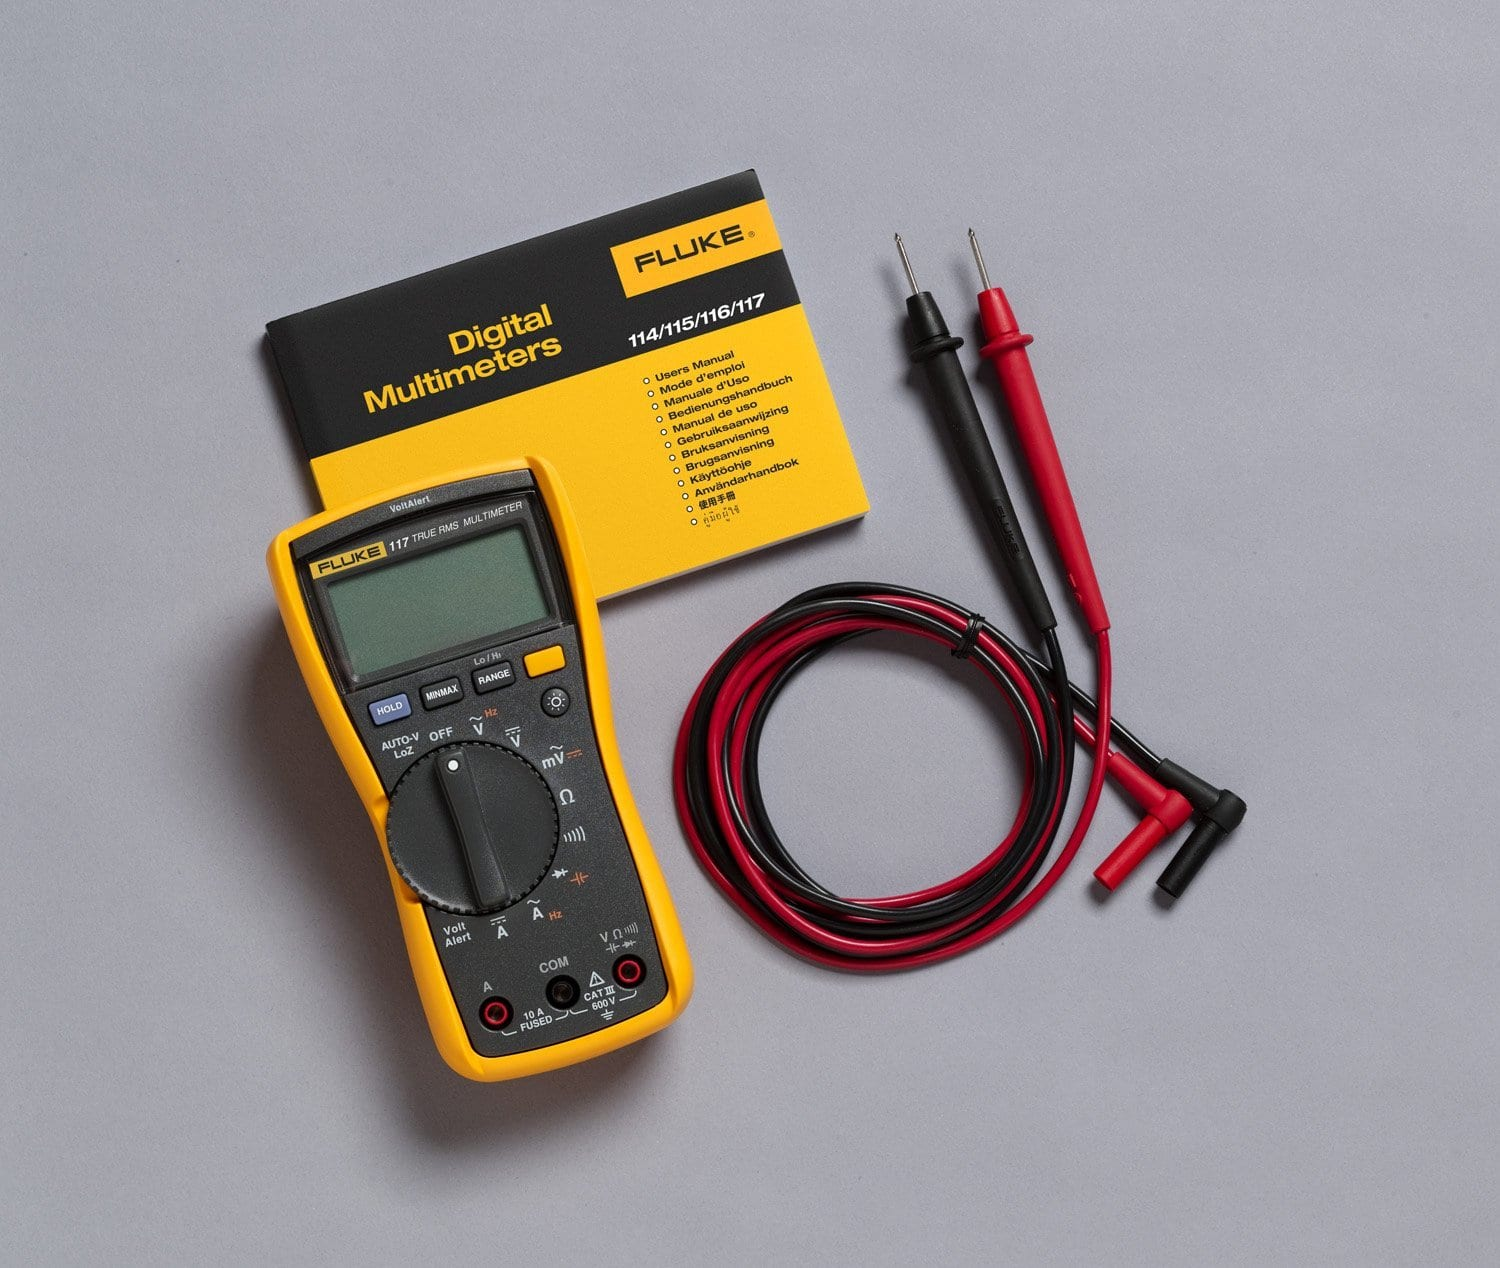 fluke 117 with probes review